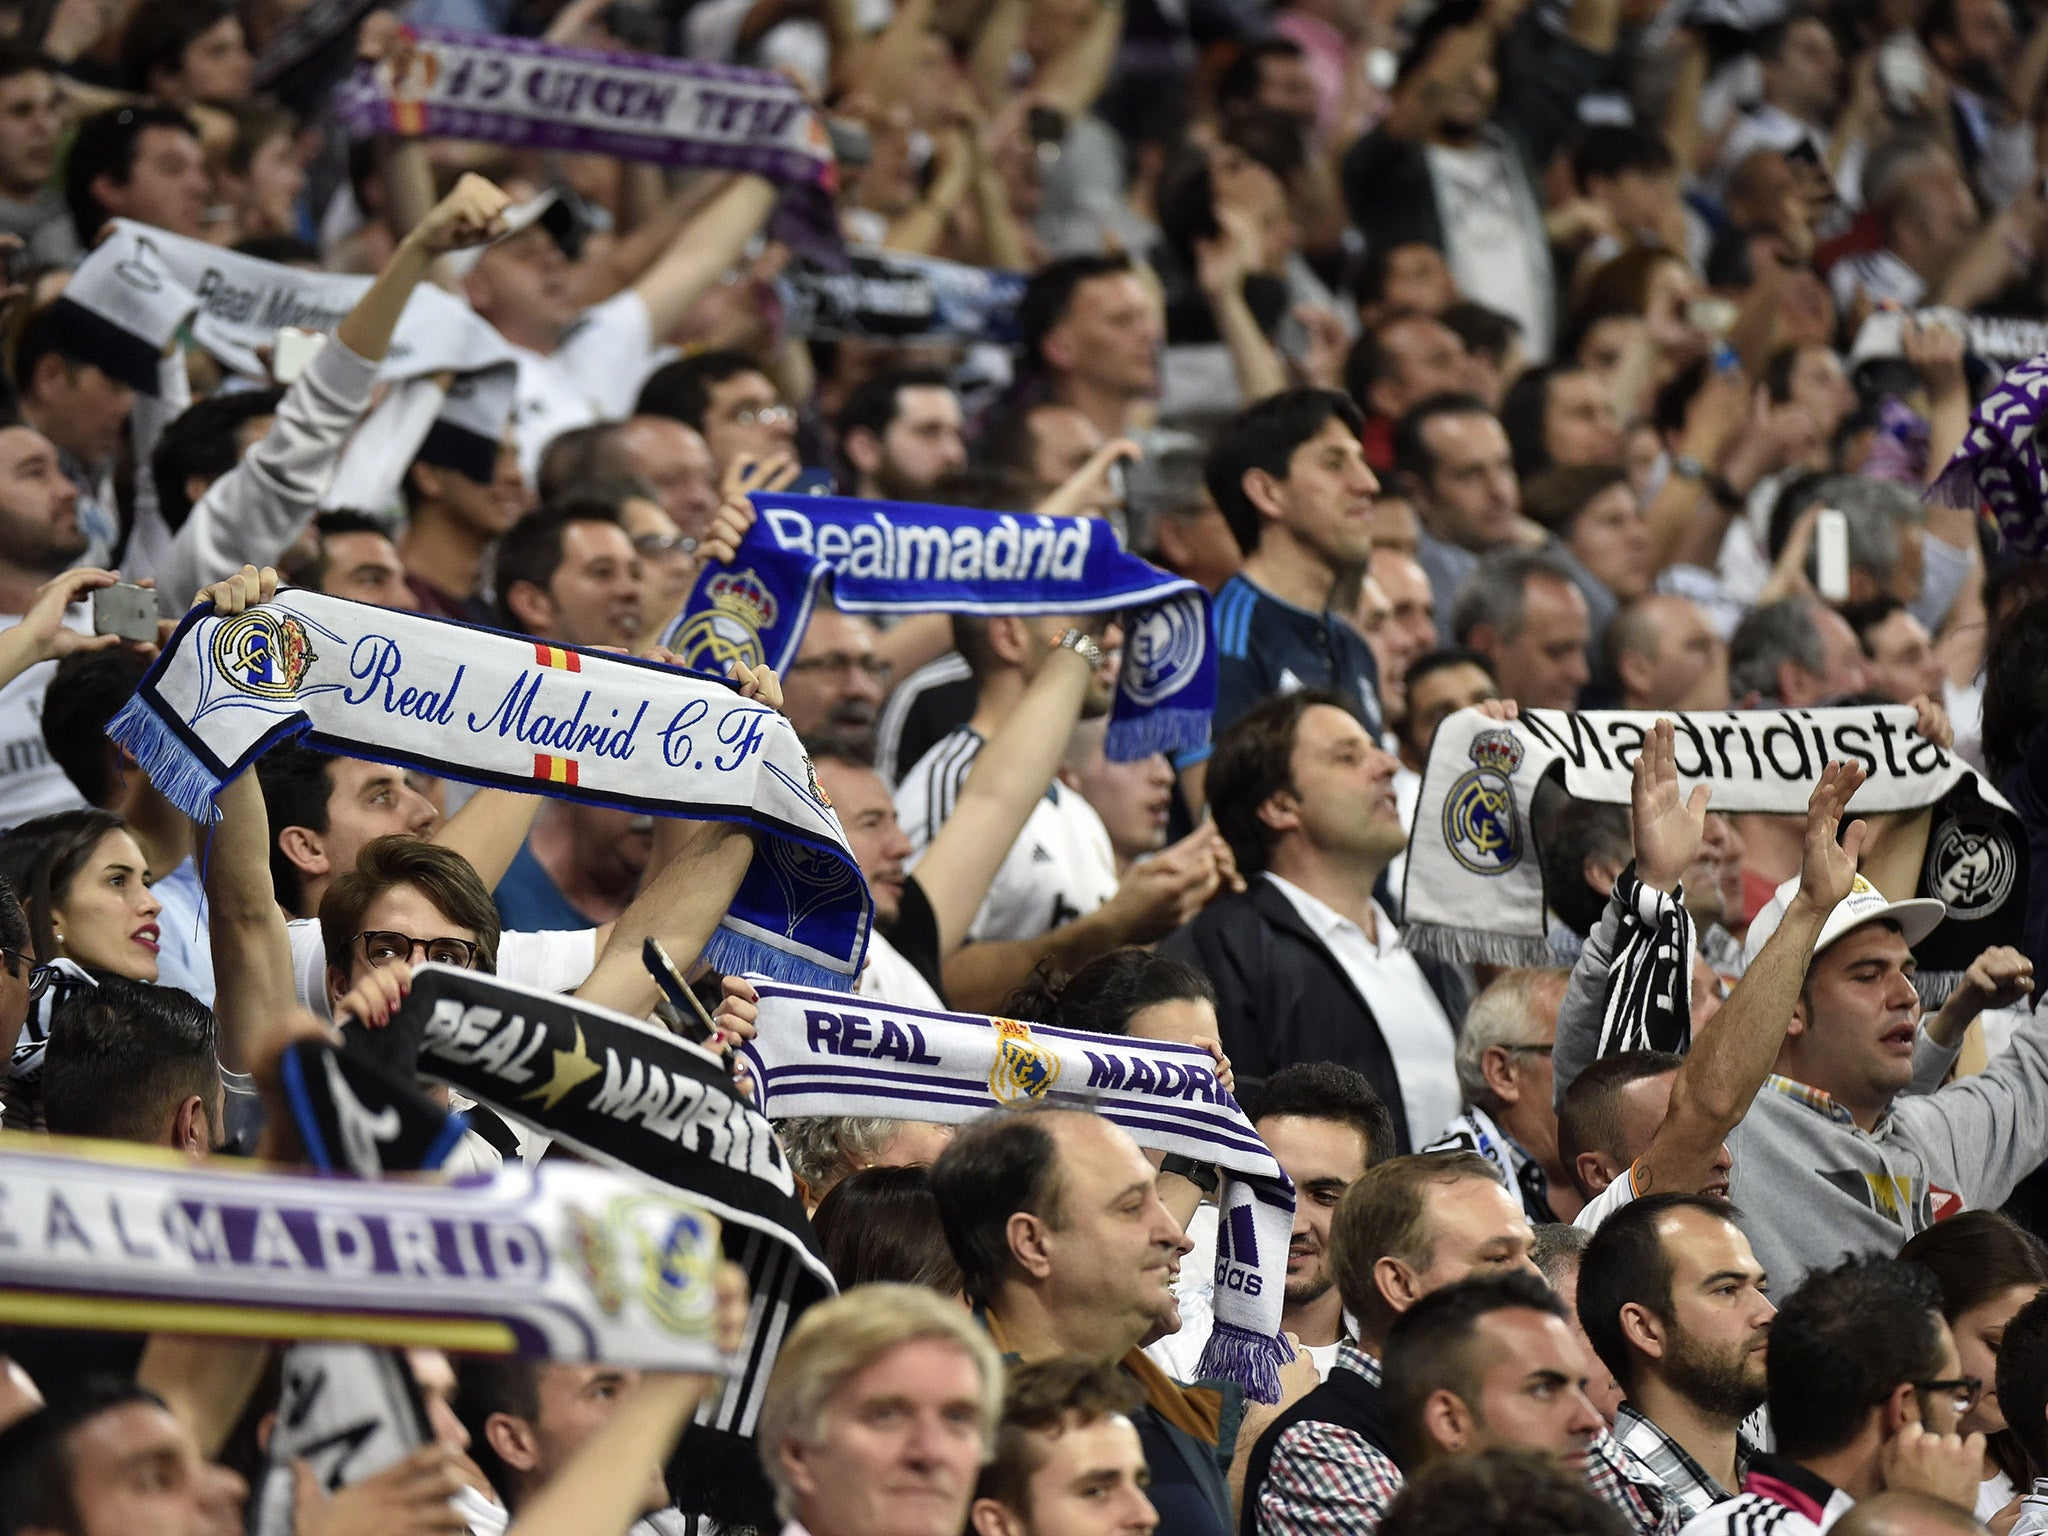 champions league final tickets real madrid to hold lottery in order to award their 19 550 ticket allocation to fans the independent